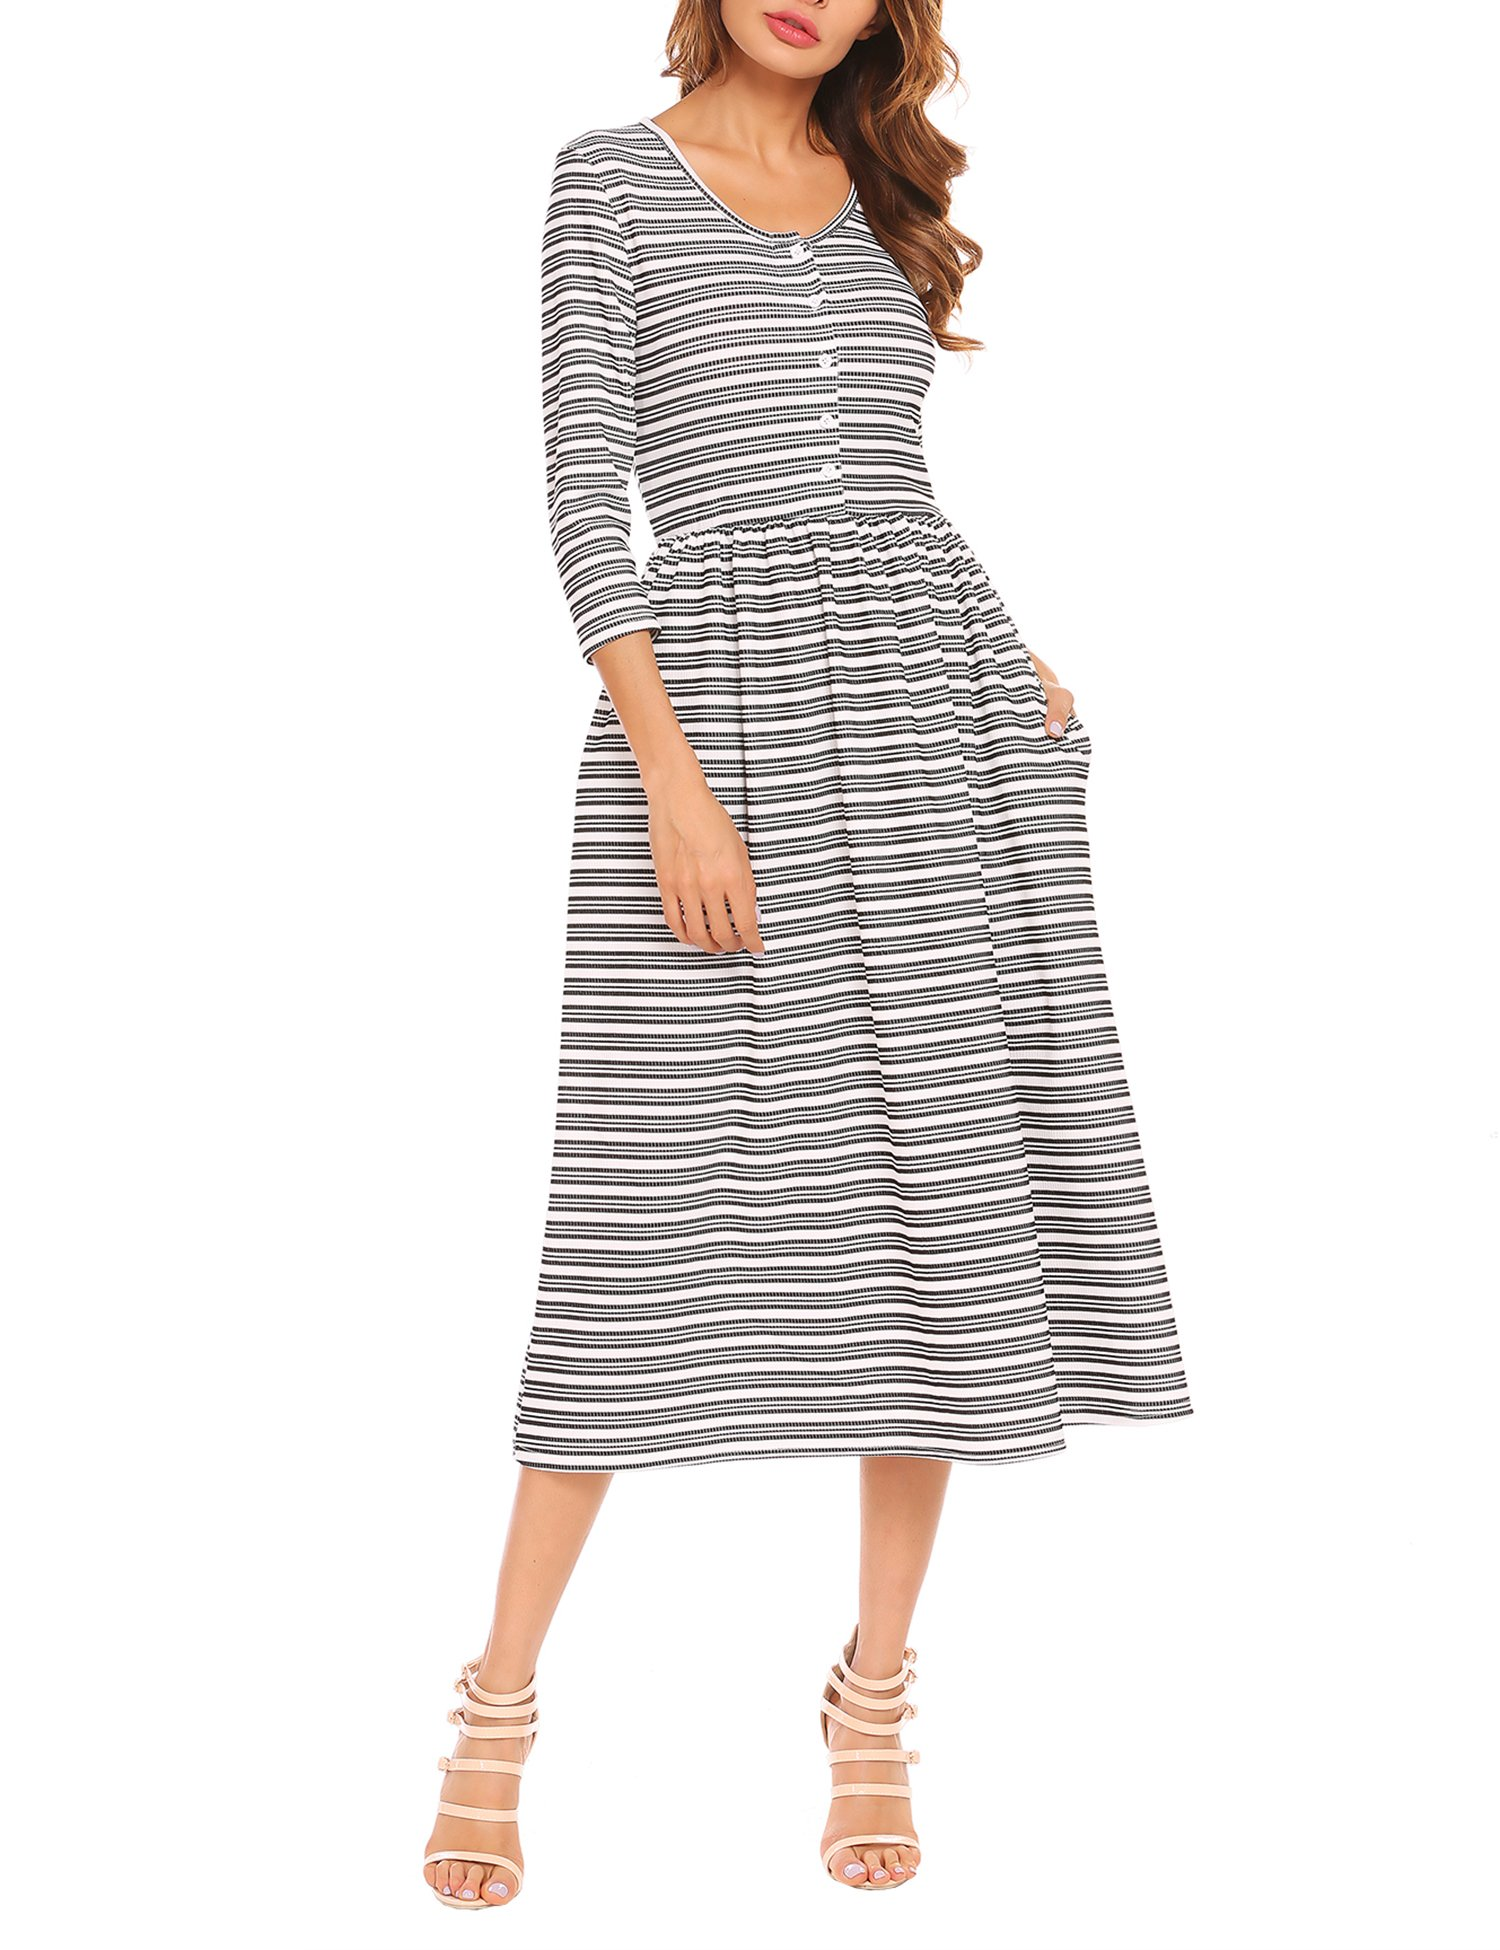 ACEVOG Women Scoop Neck 3/4 Sleeve Button Front Striped Casual Maxi Dress with Pocket Black and White